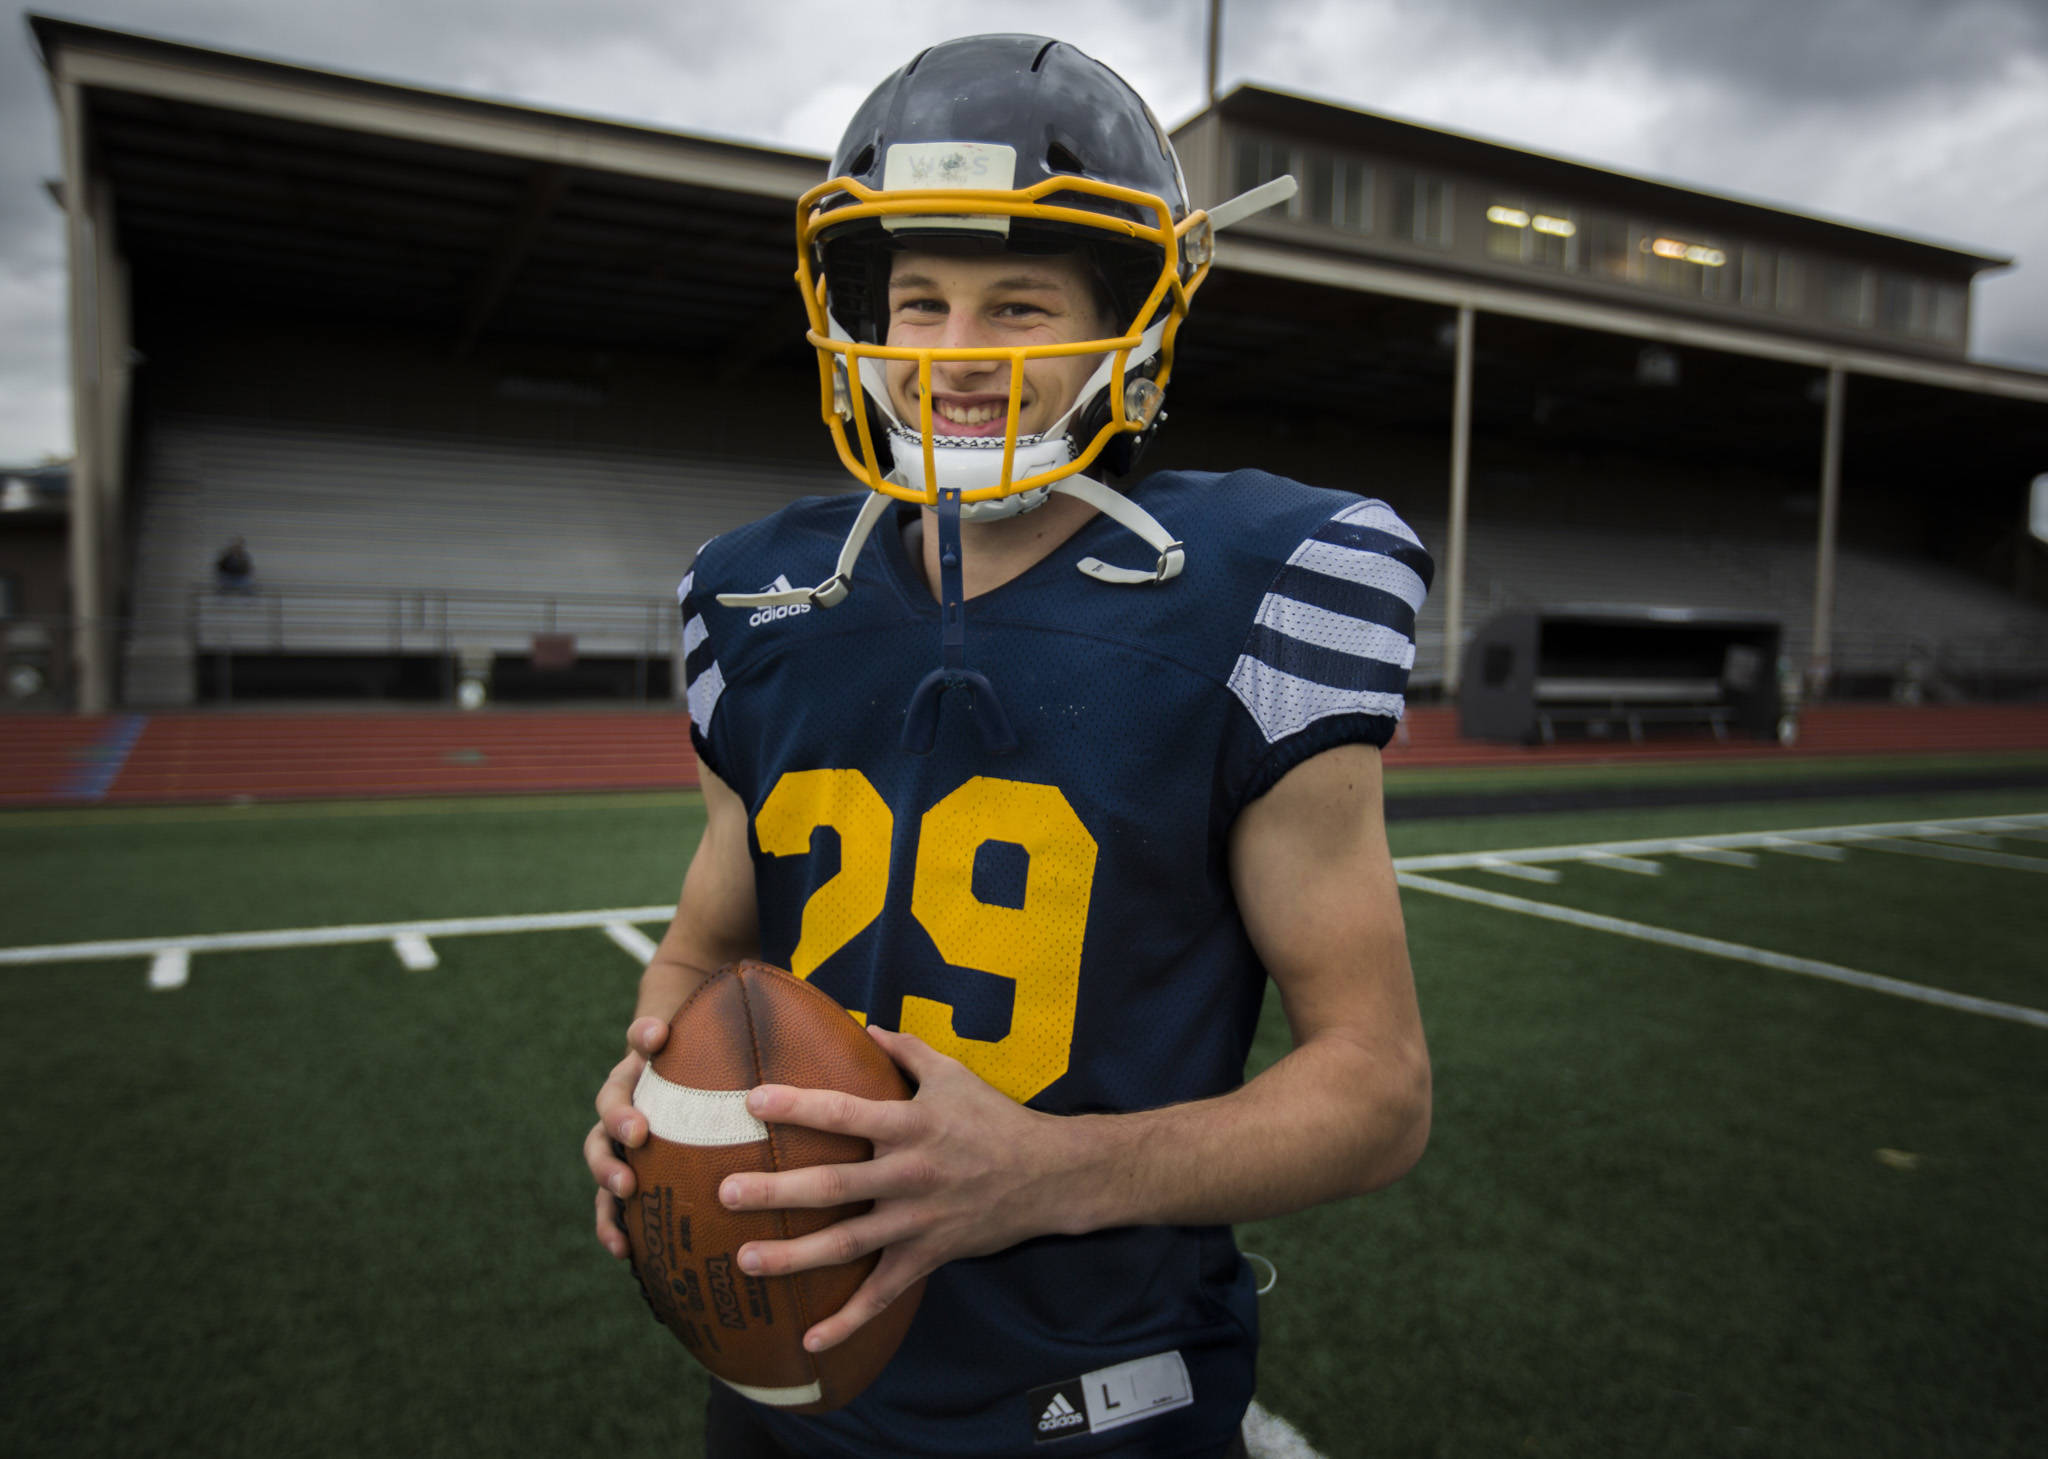 Quarterback Jackson Cole at Mariner High School on Thursday, Oct. 17, 2019 in Everett, Wash. (Olivia Vanni / The Herald)